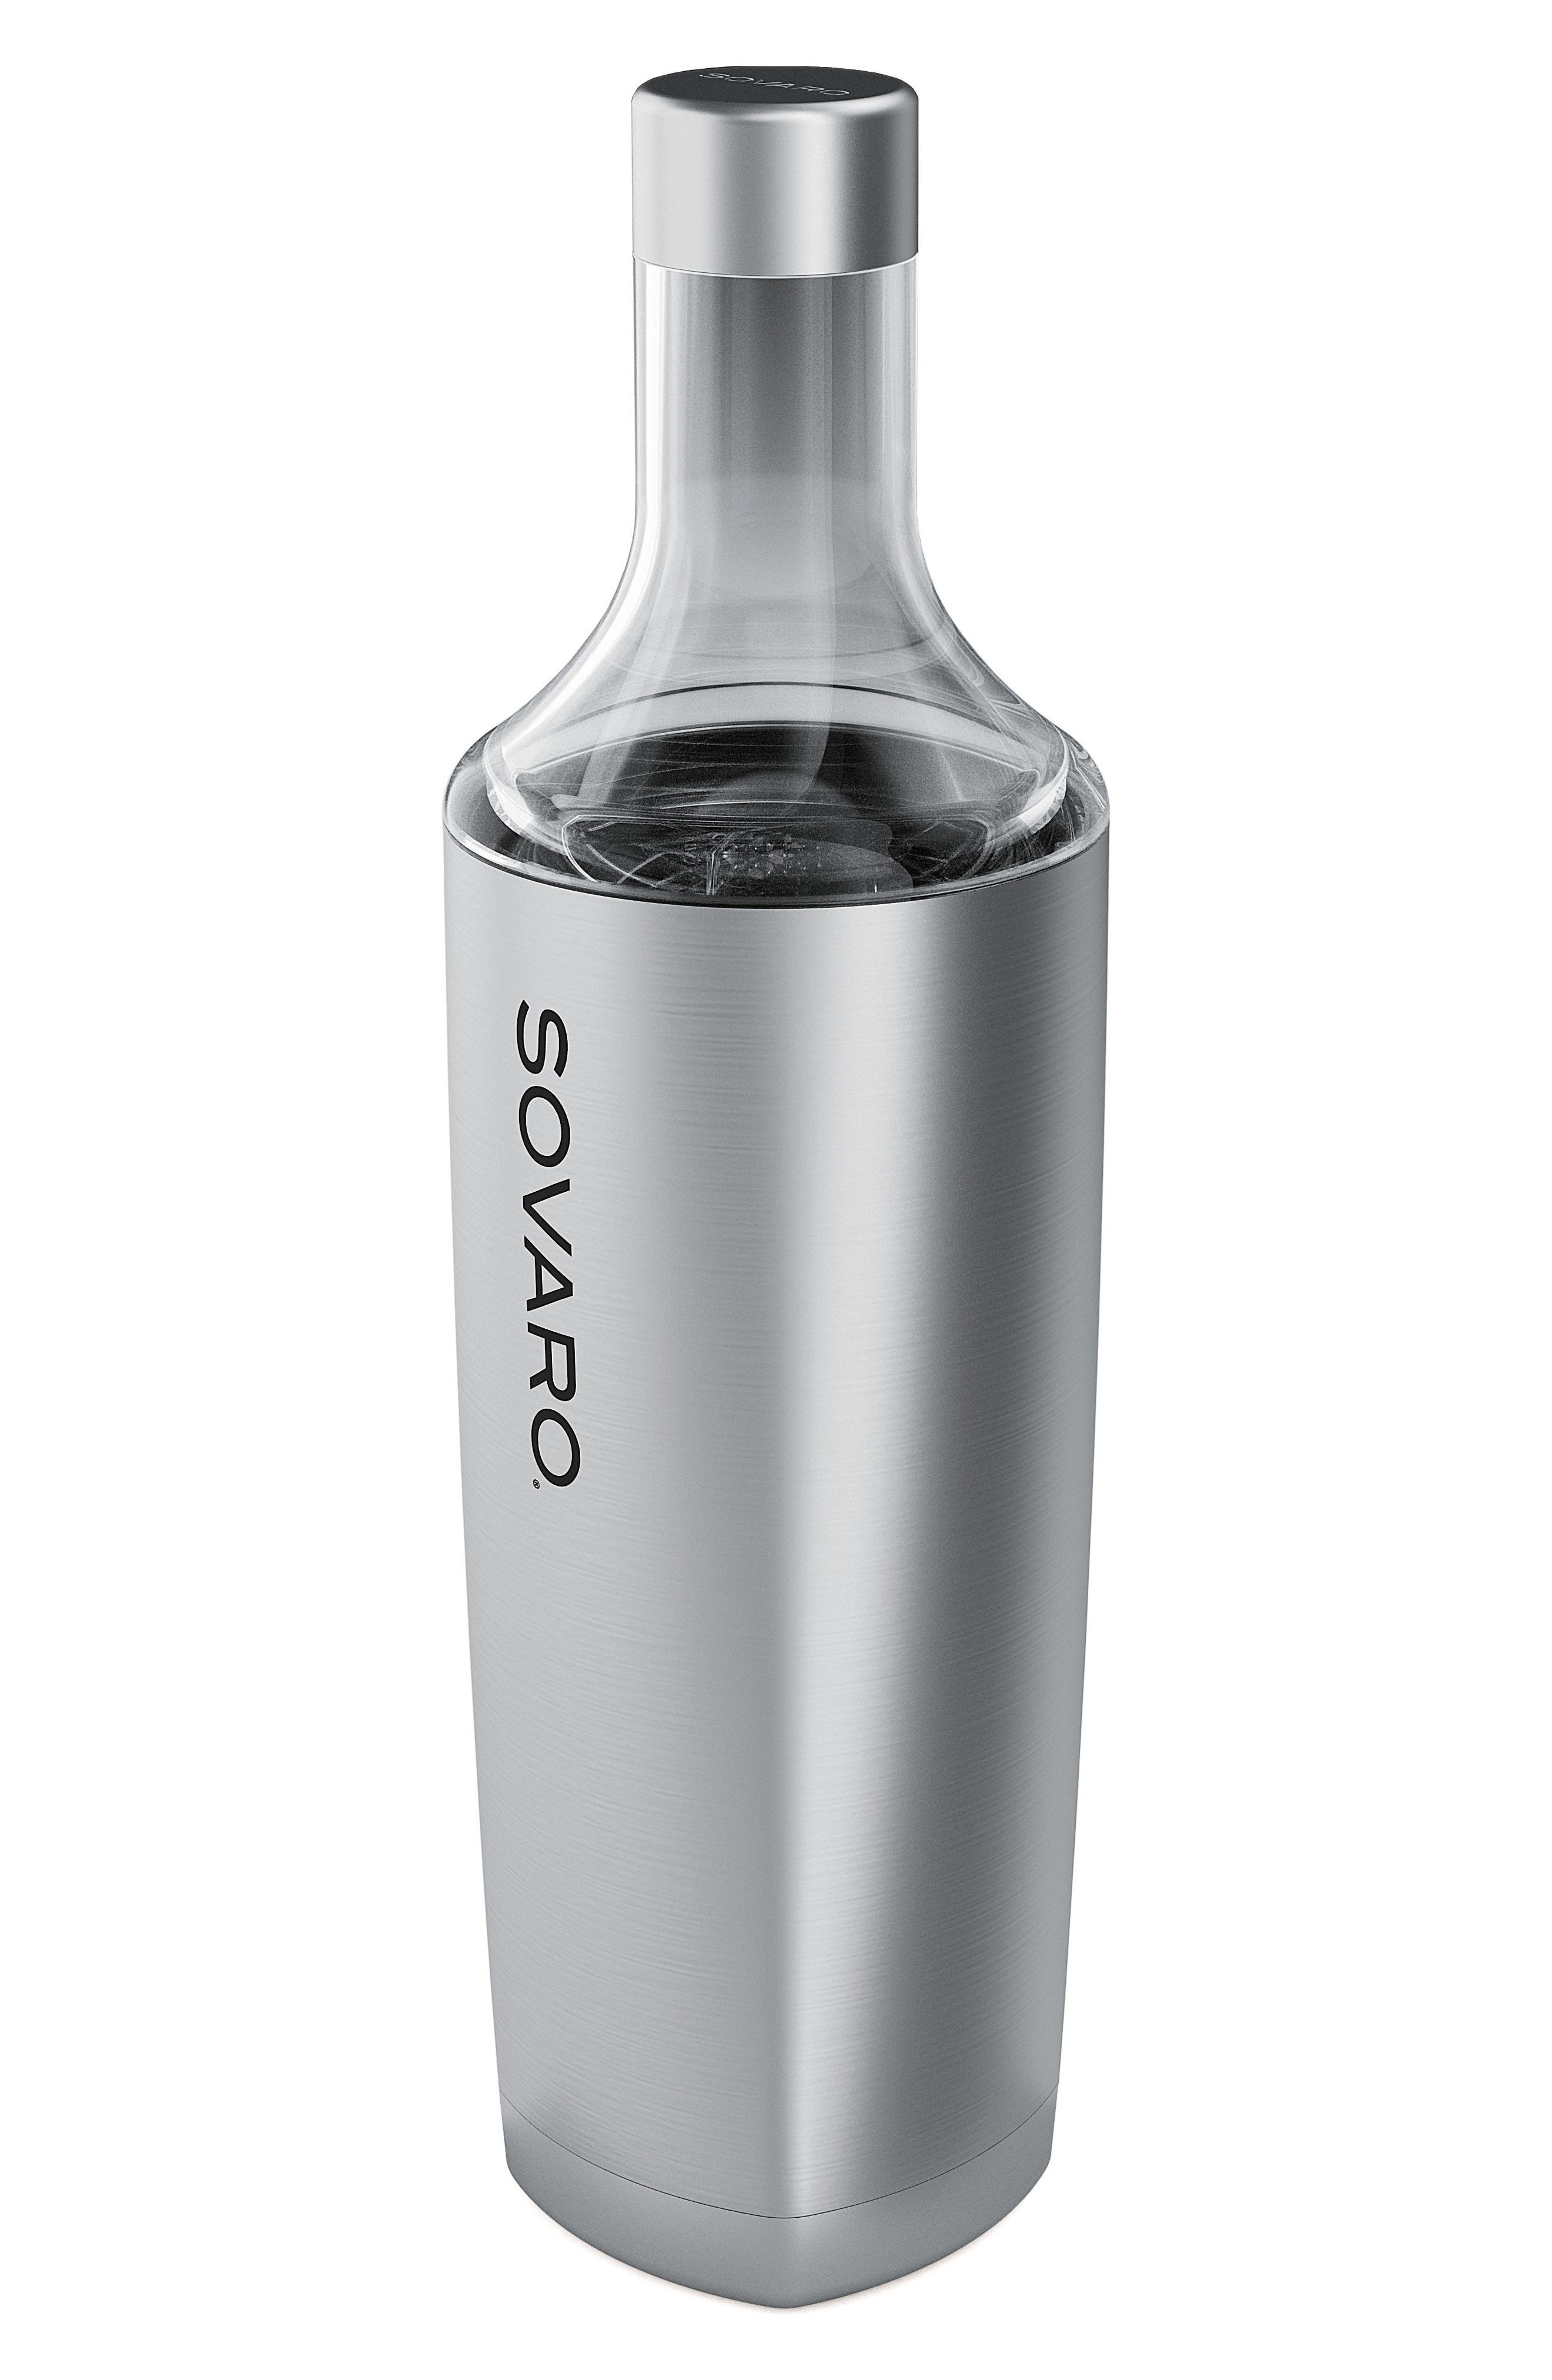 25-Ounce Insulated Beverage Bottle,                             Main thumbnail 1, color,                             Stainless